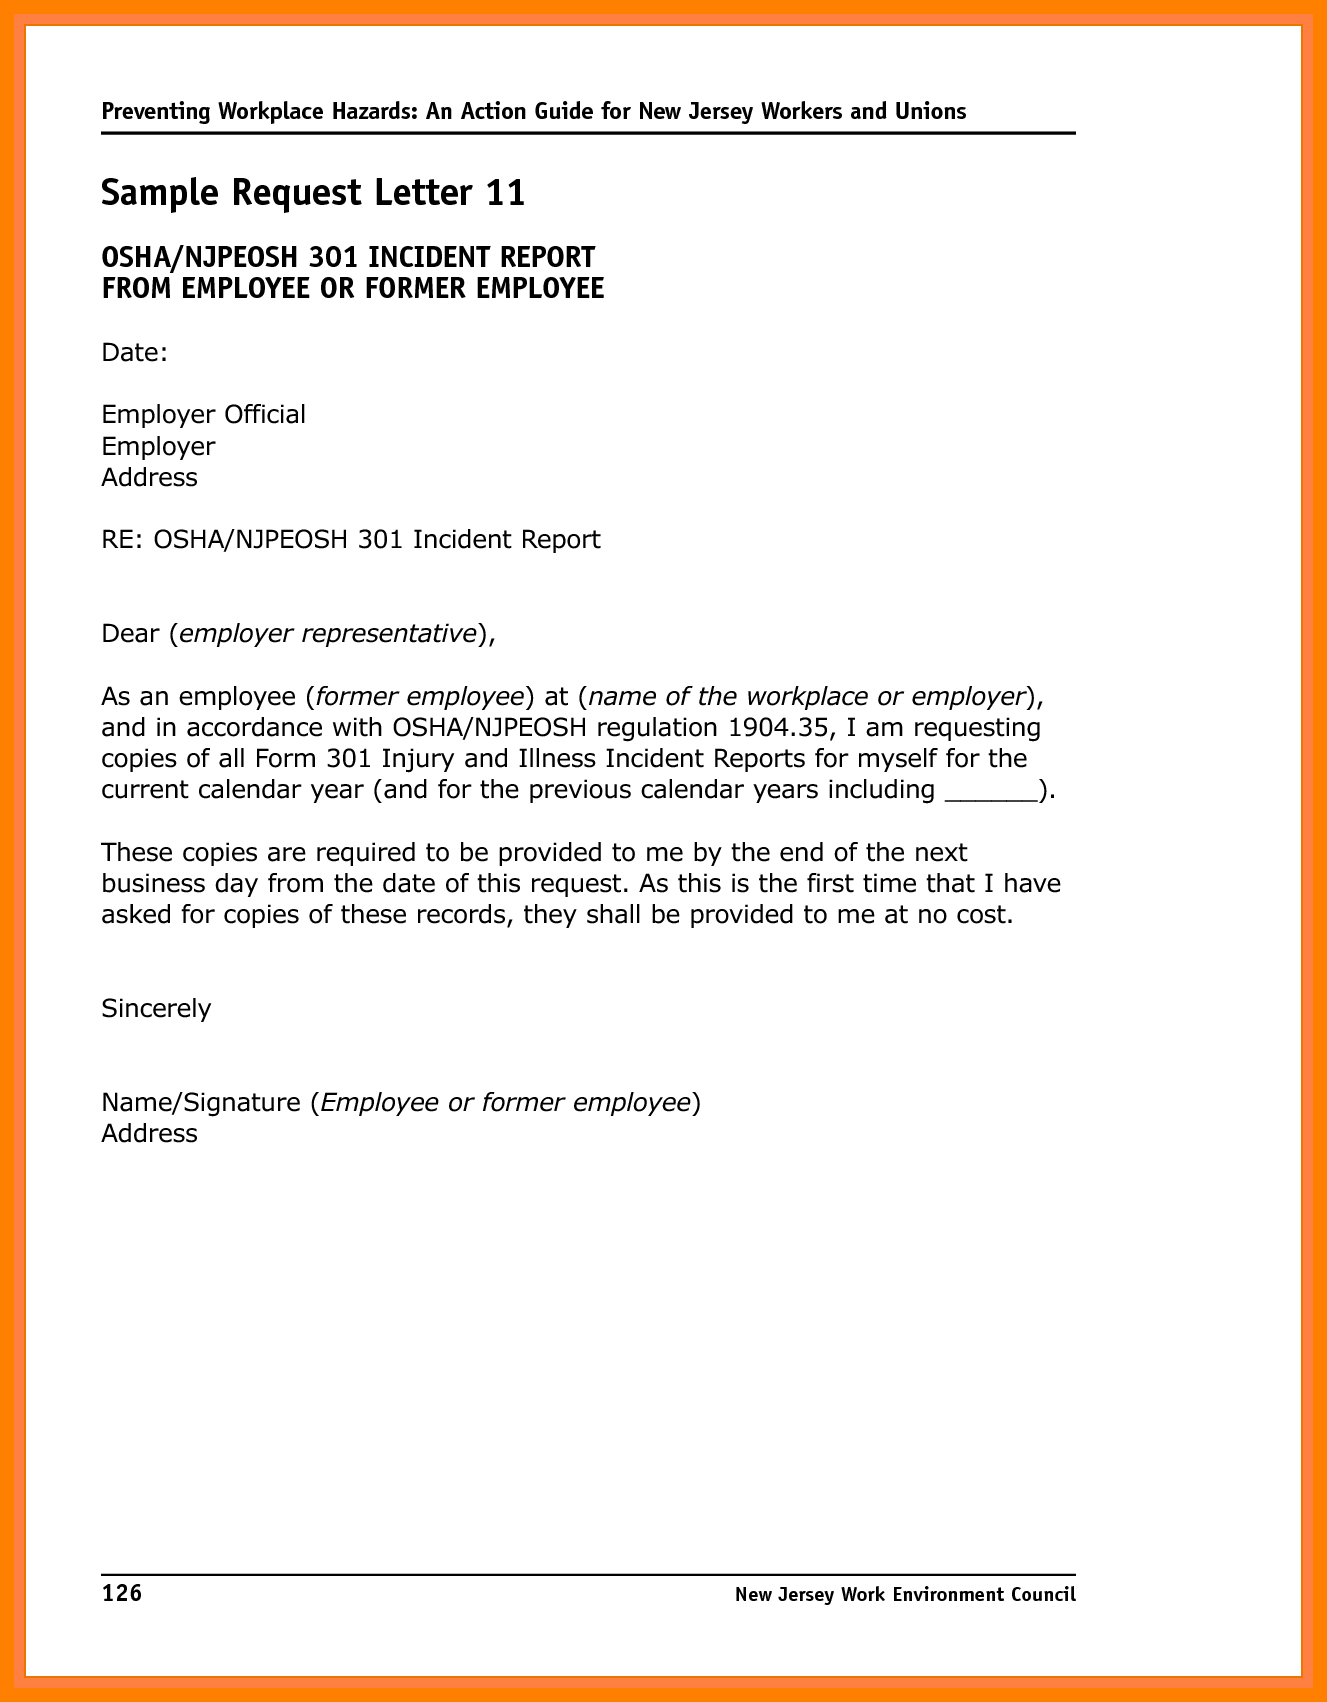 Incident Report Sample In Workplace – Horizonconsulting.co With Sample Fire Investigation Report Template